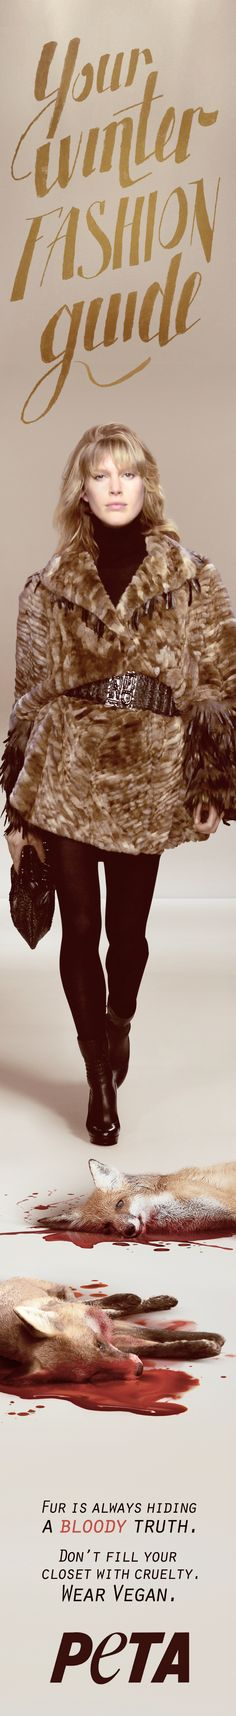 Fashion trends for fall/winter 2016-2017. Wonder which winter styles will not only keep you warm but also leave you looking fabulous? Photo credit: fervent-adepte-de-la-mode via Visual Hunt / CC BY (https://www.flickr.com/photos/51528537@N08/8528544772/). Check our guide on how to wear and put together accessories in easier, stylish and fashionable way. Great and trendy ideas in our boutique.